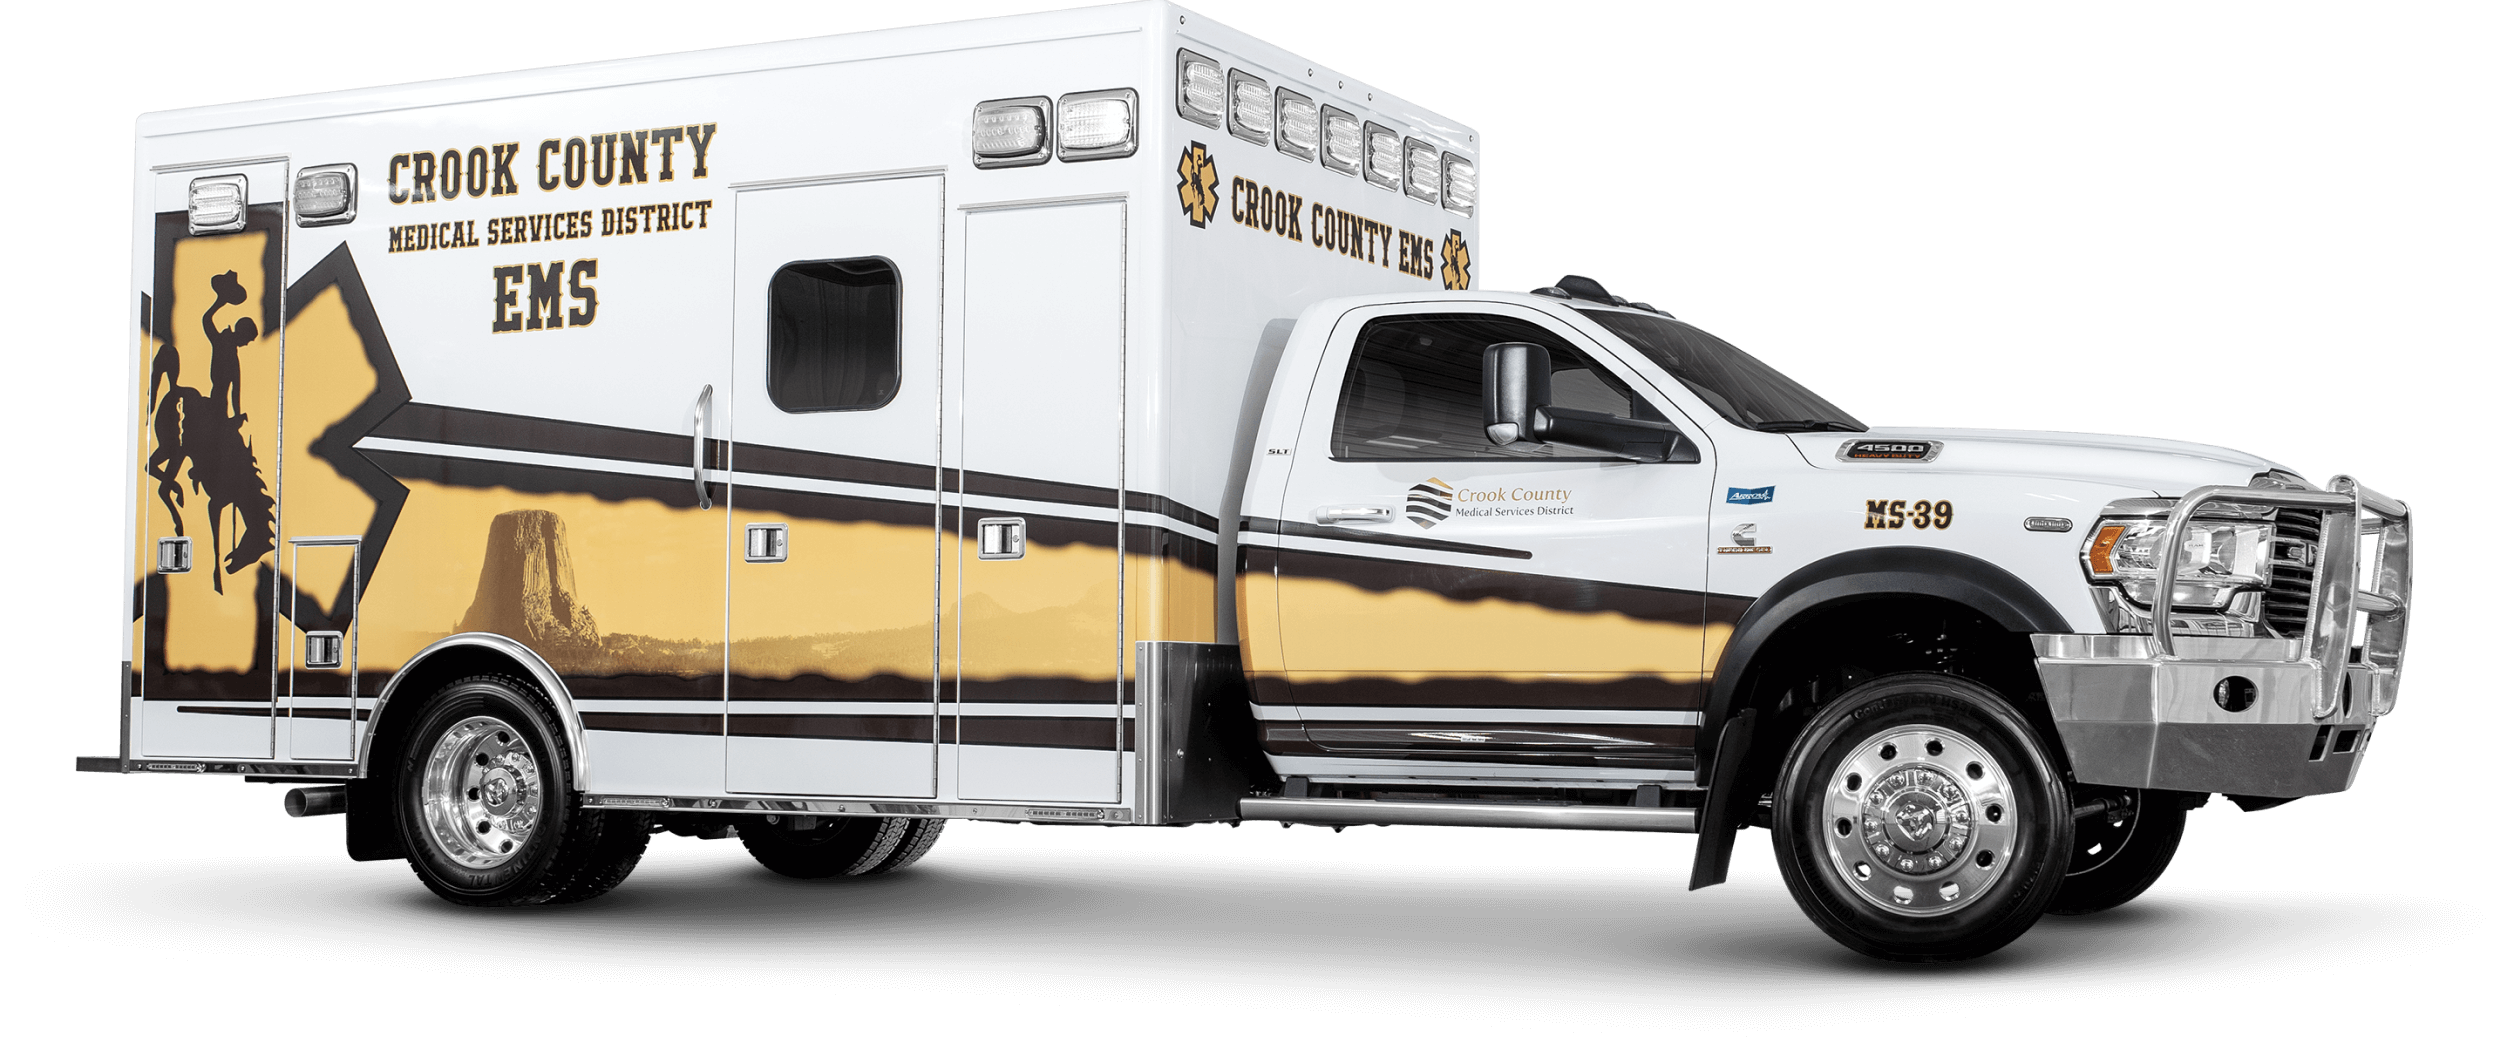 Passenger Side View of Crook County Ambulance